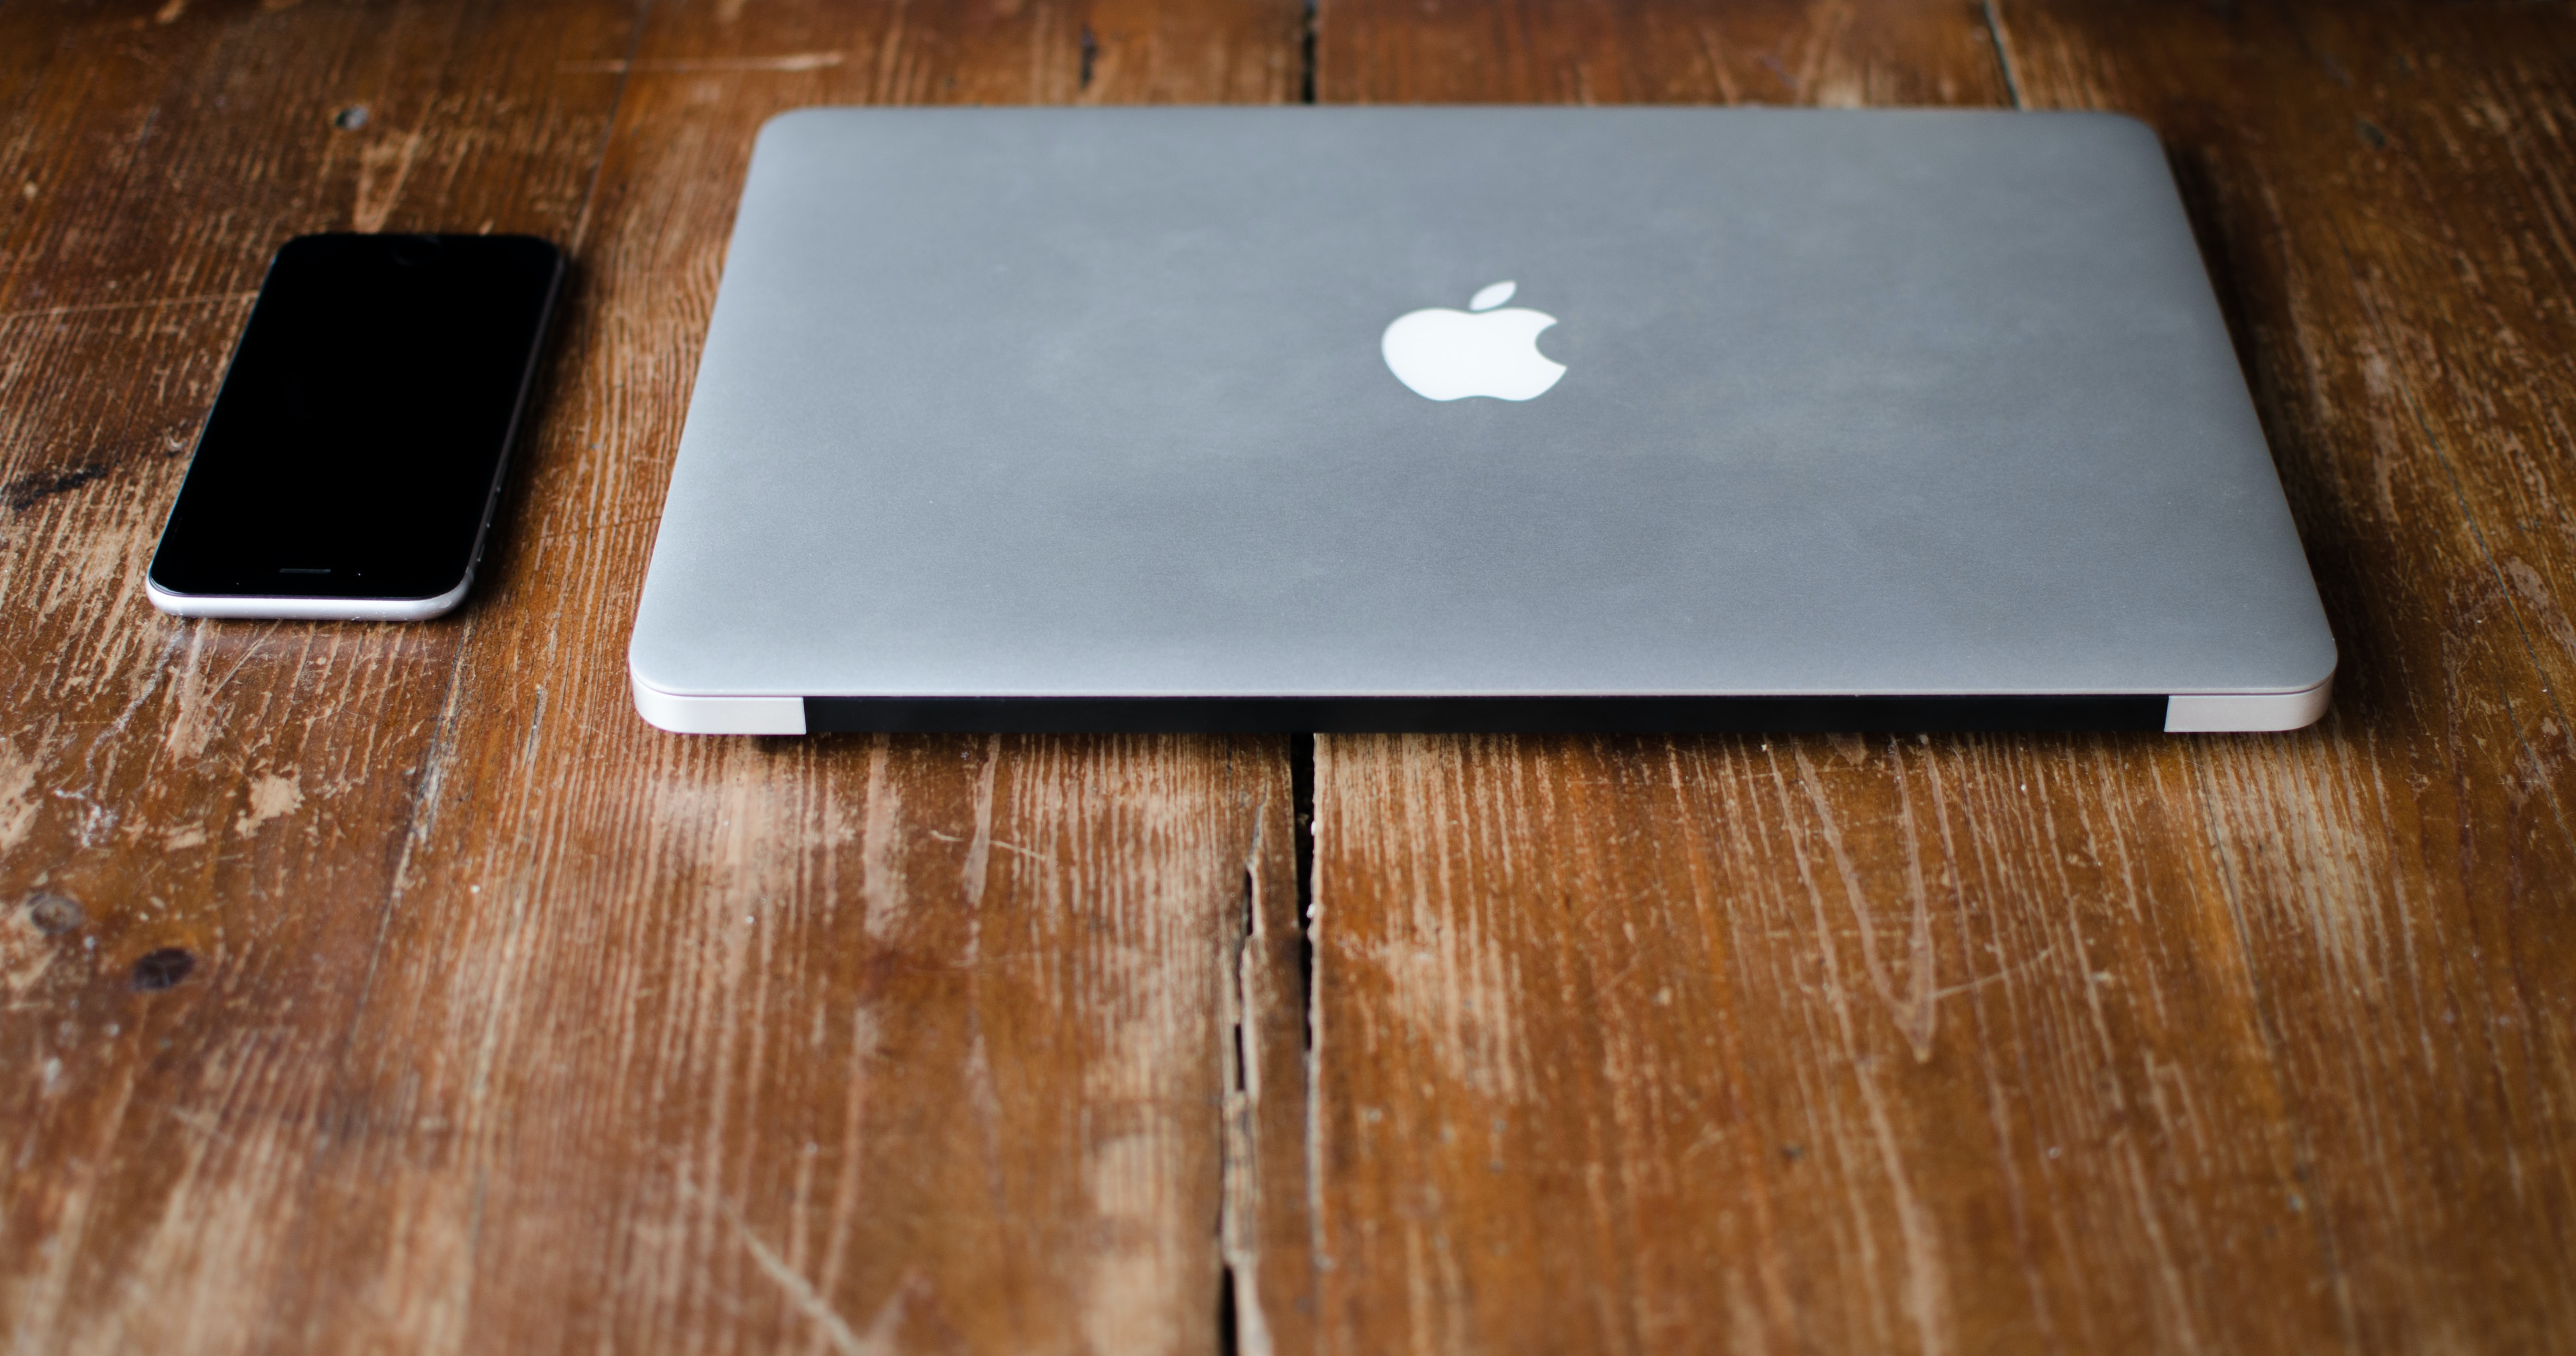 photo of MacBook Pro beside black Android smartphone